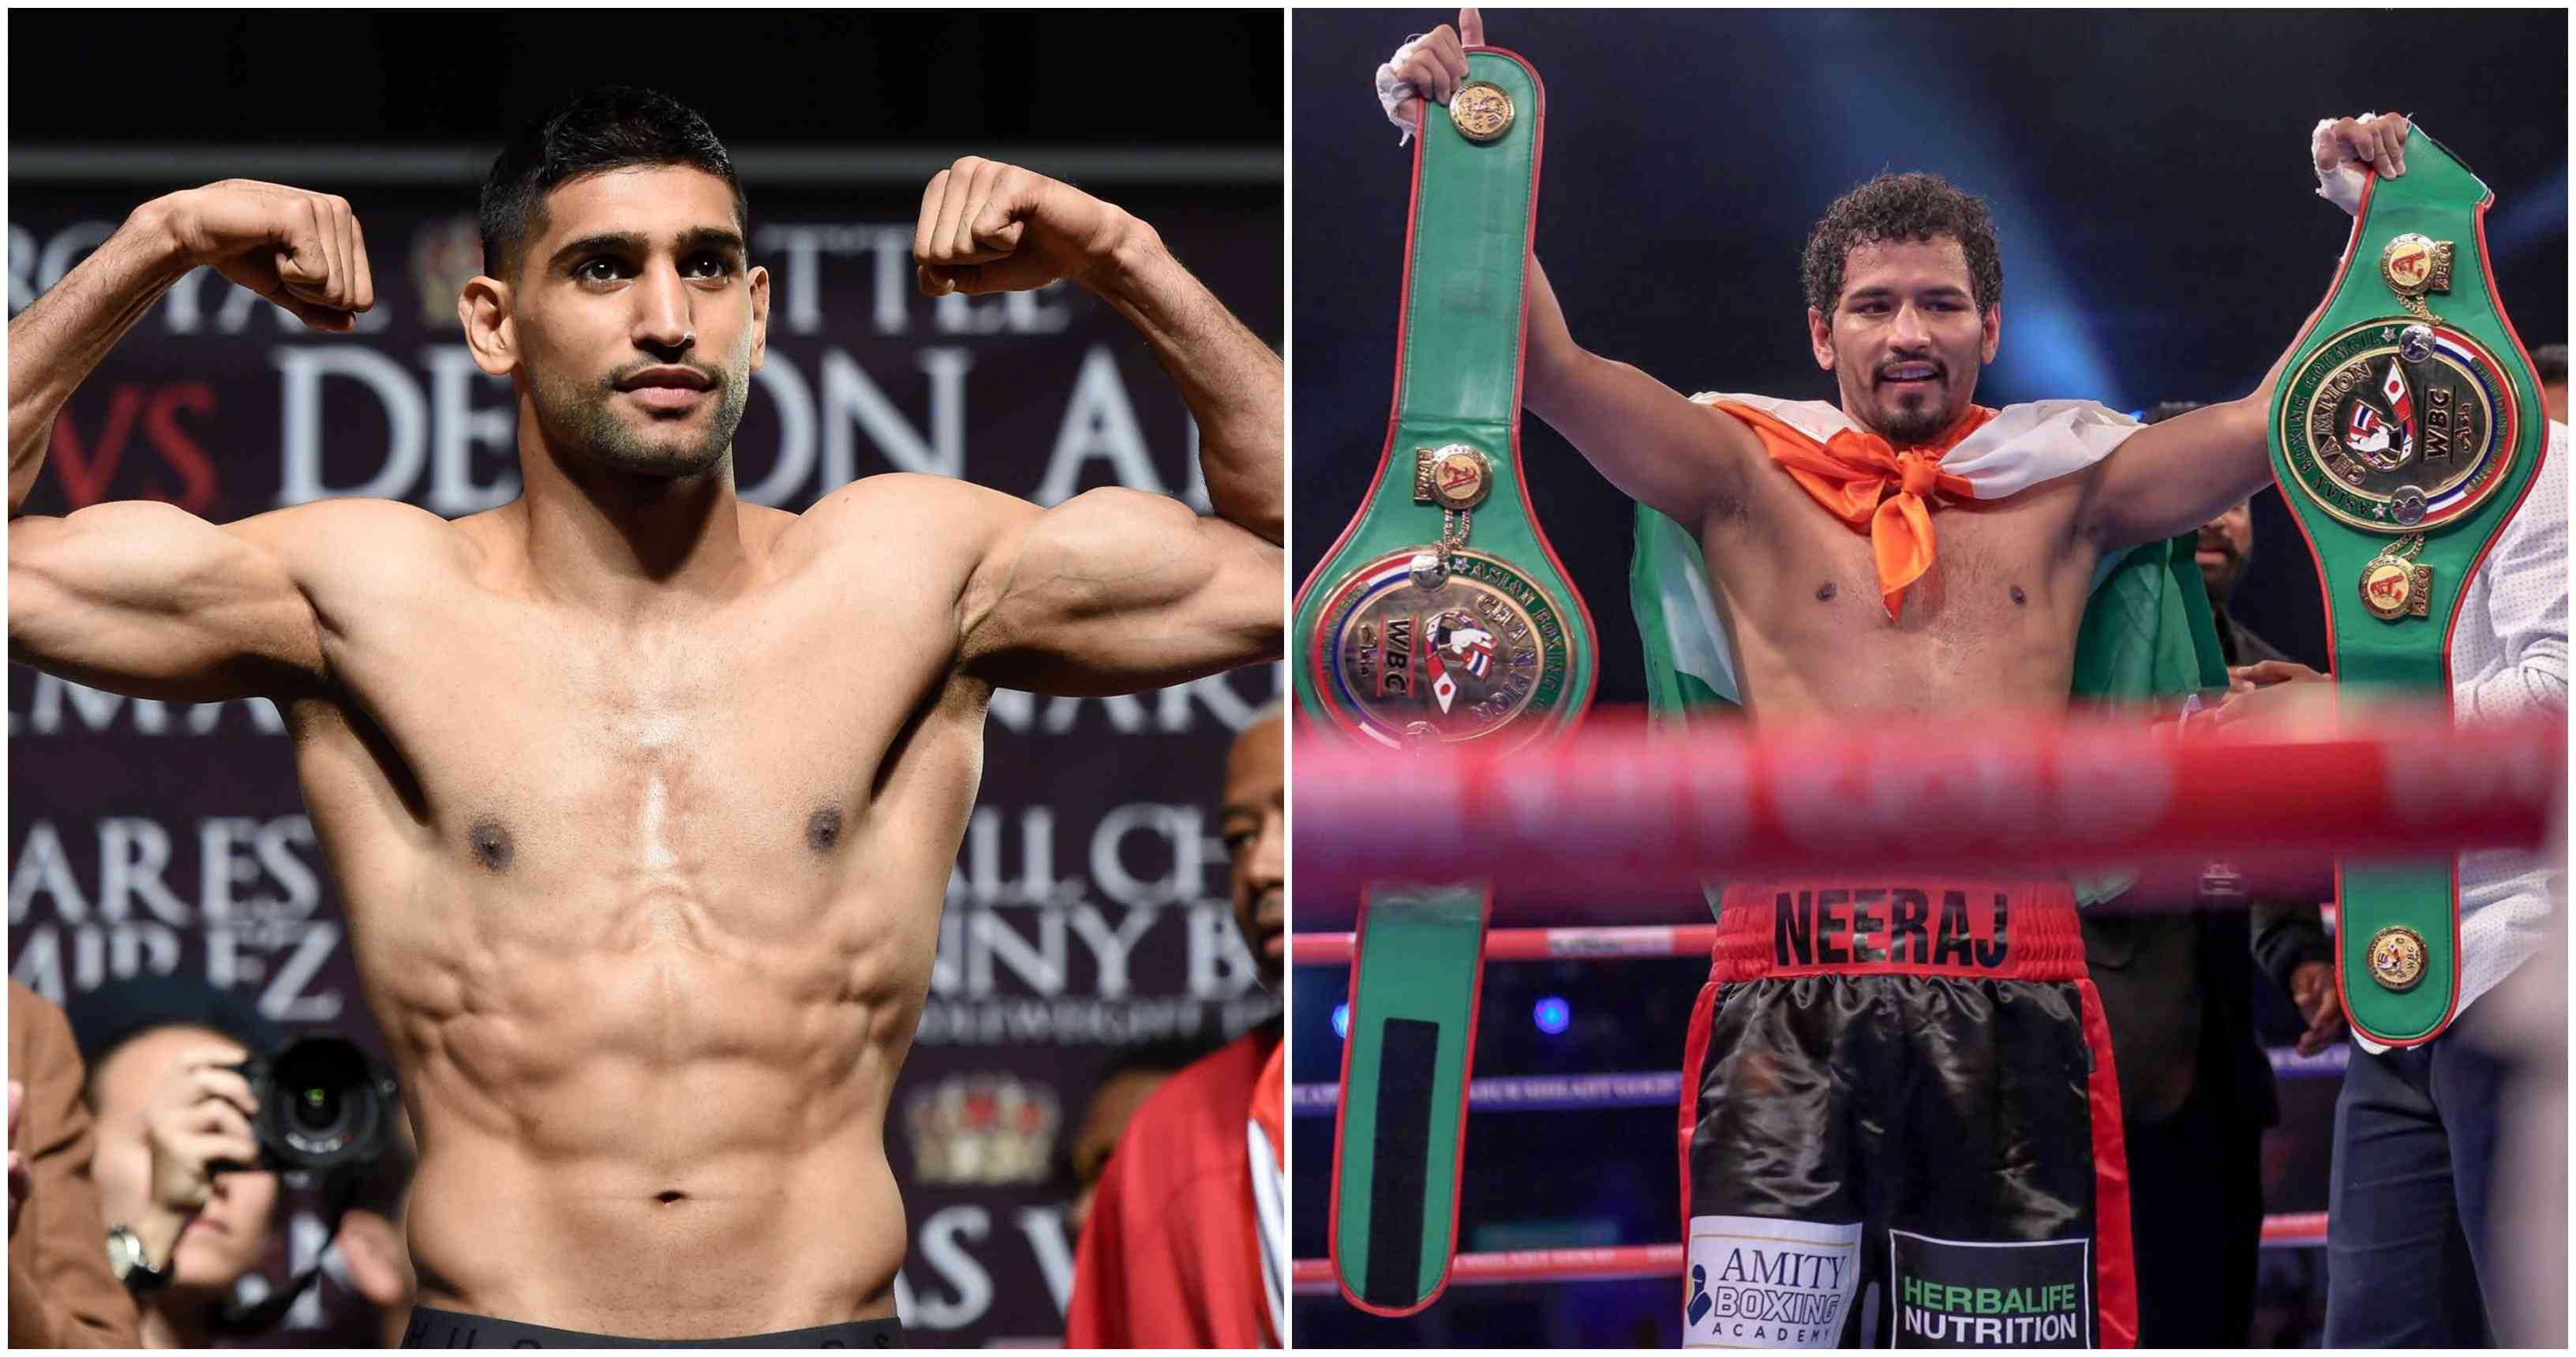 Amir Khan to fight Neeraj Goyat on July 12 in Saudi Arabia - Khan